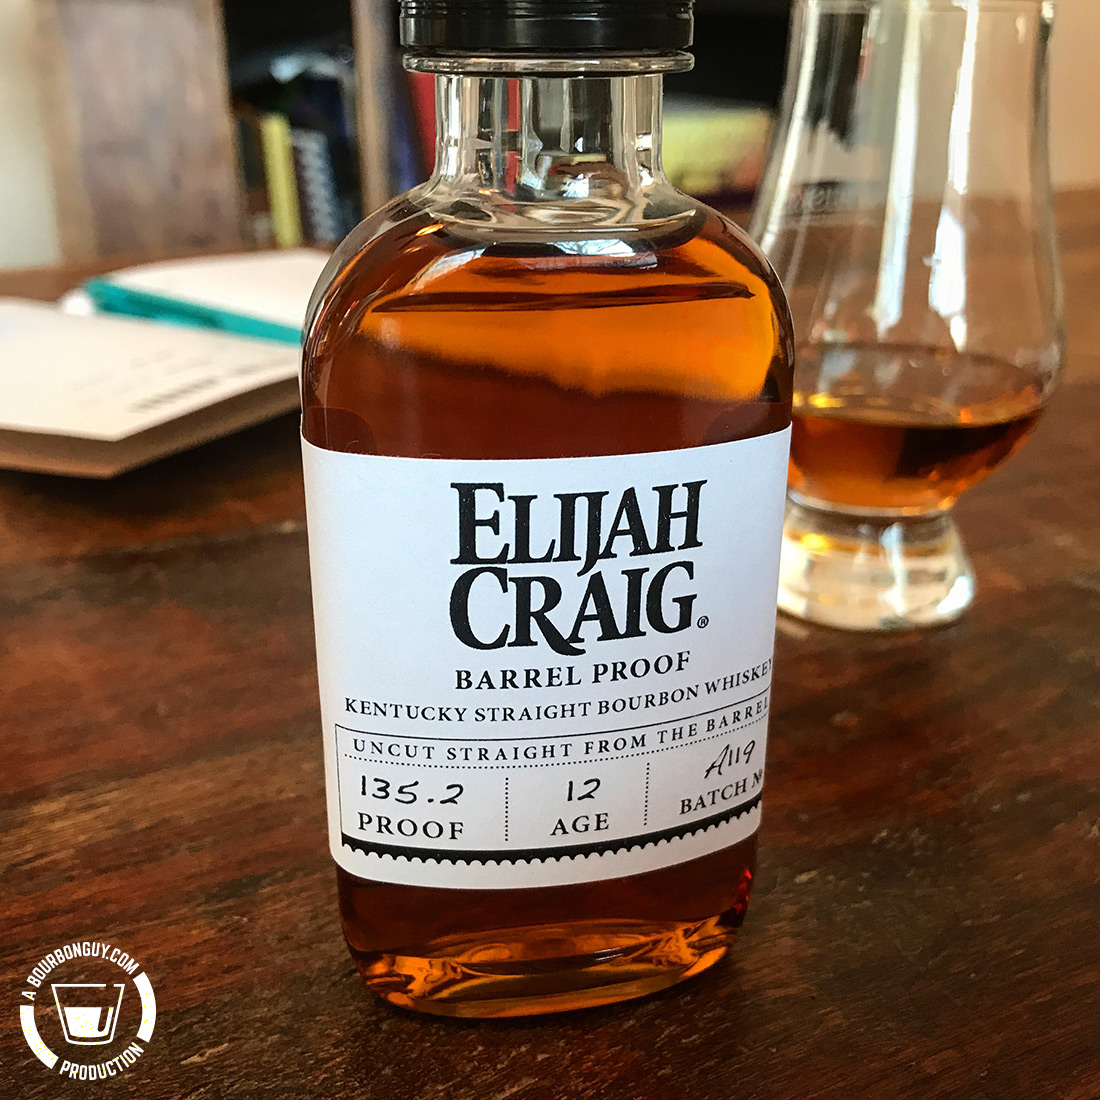 IMAGE: Sample bottle of Elijah Craig Barrel Proof, Batch A119